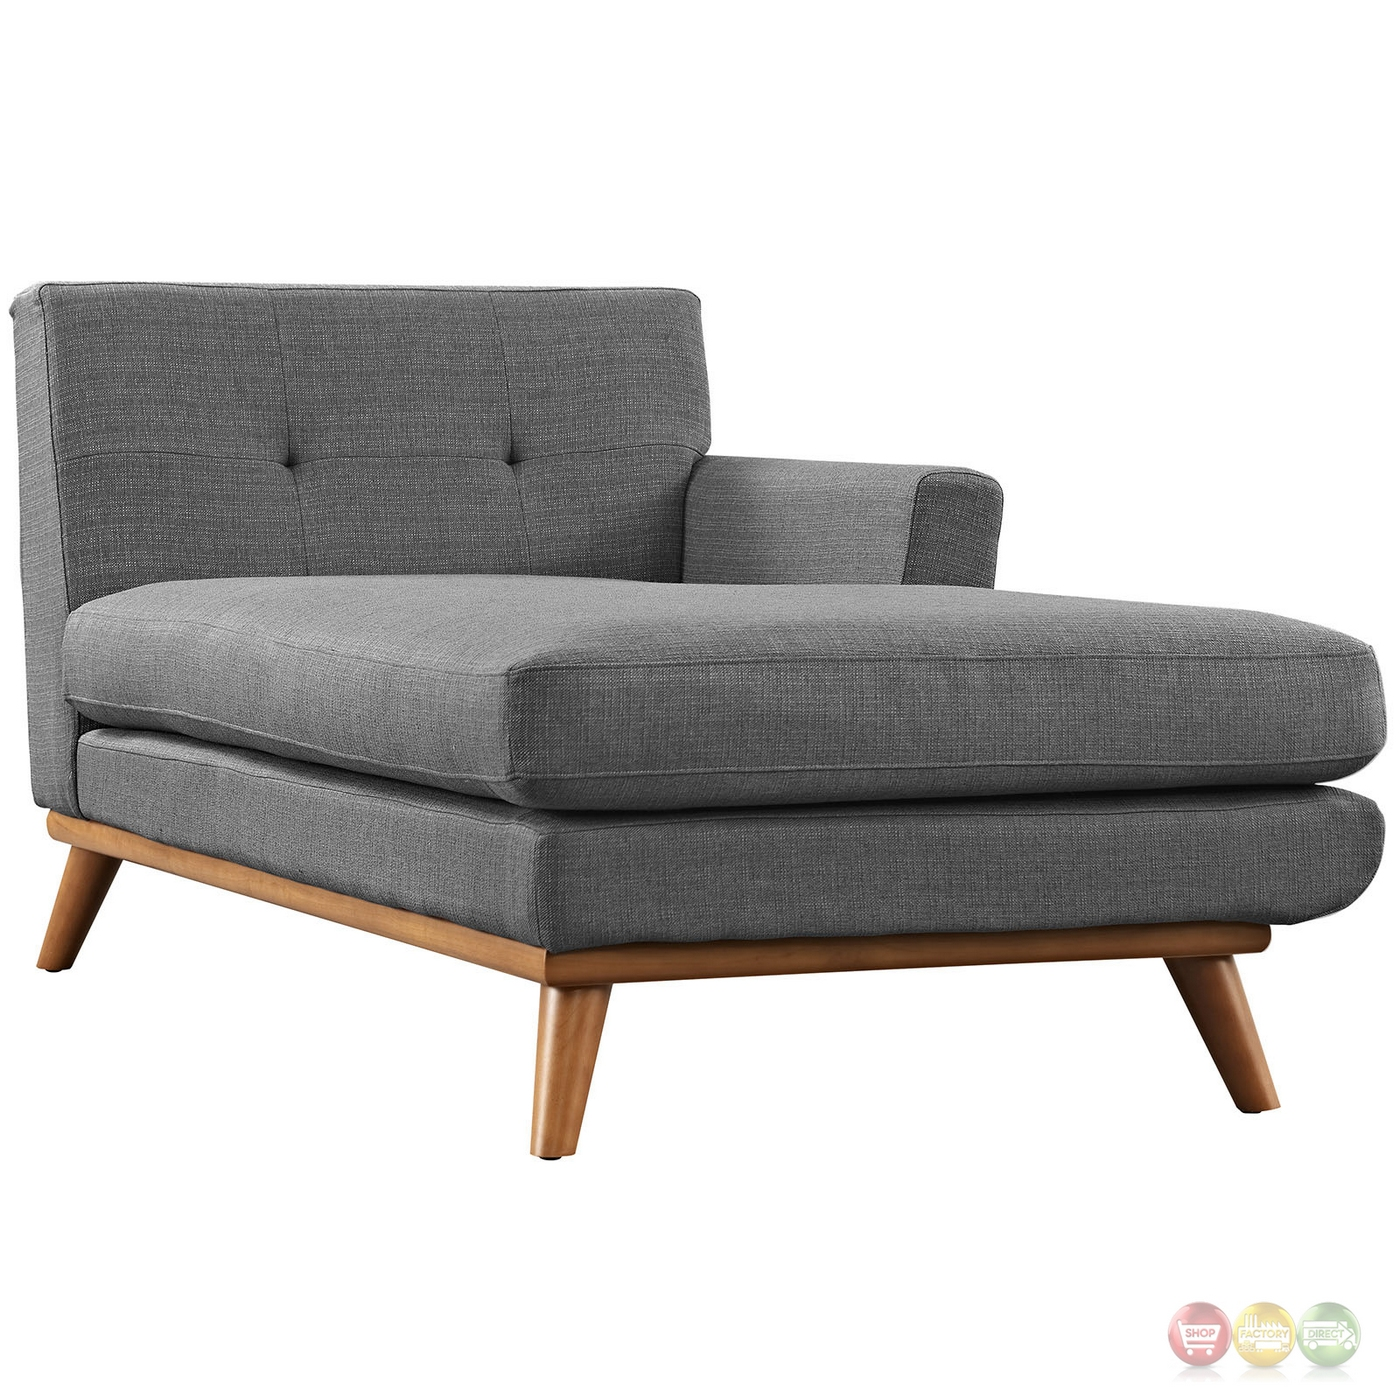 Engage contemporary right facing chaise sectional sofa w for Chaise wooden